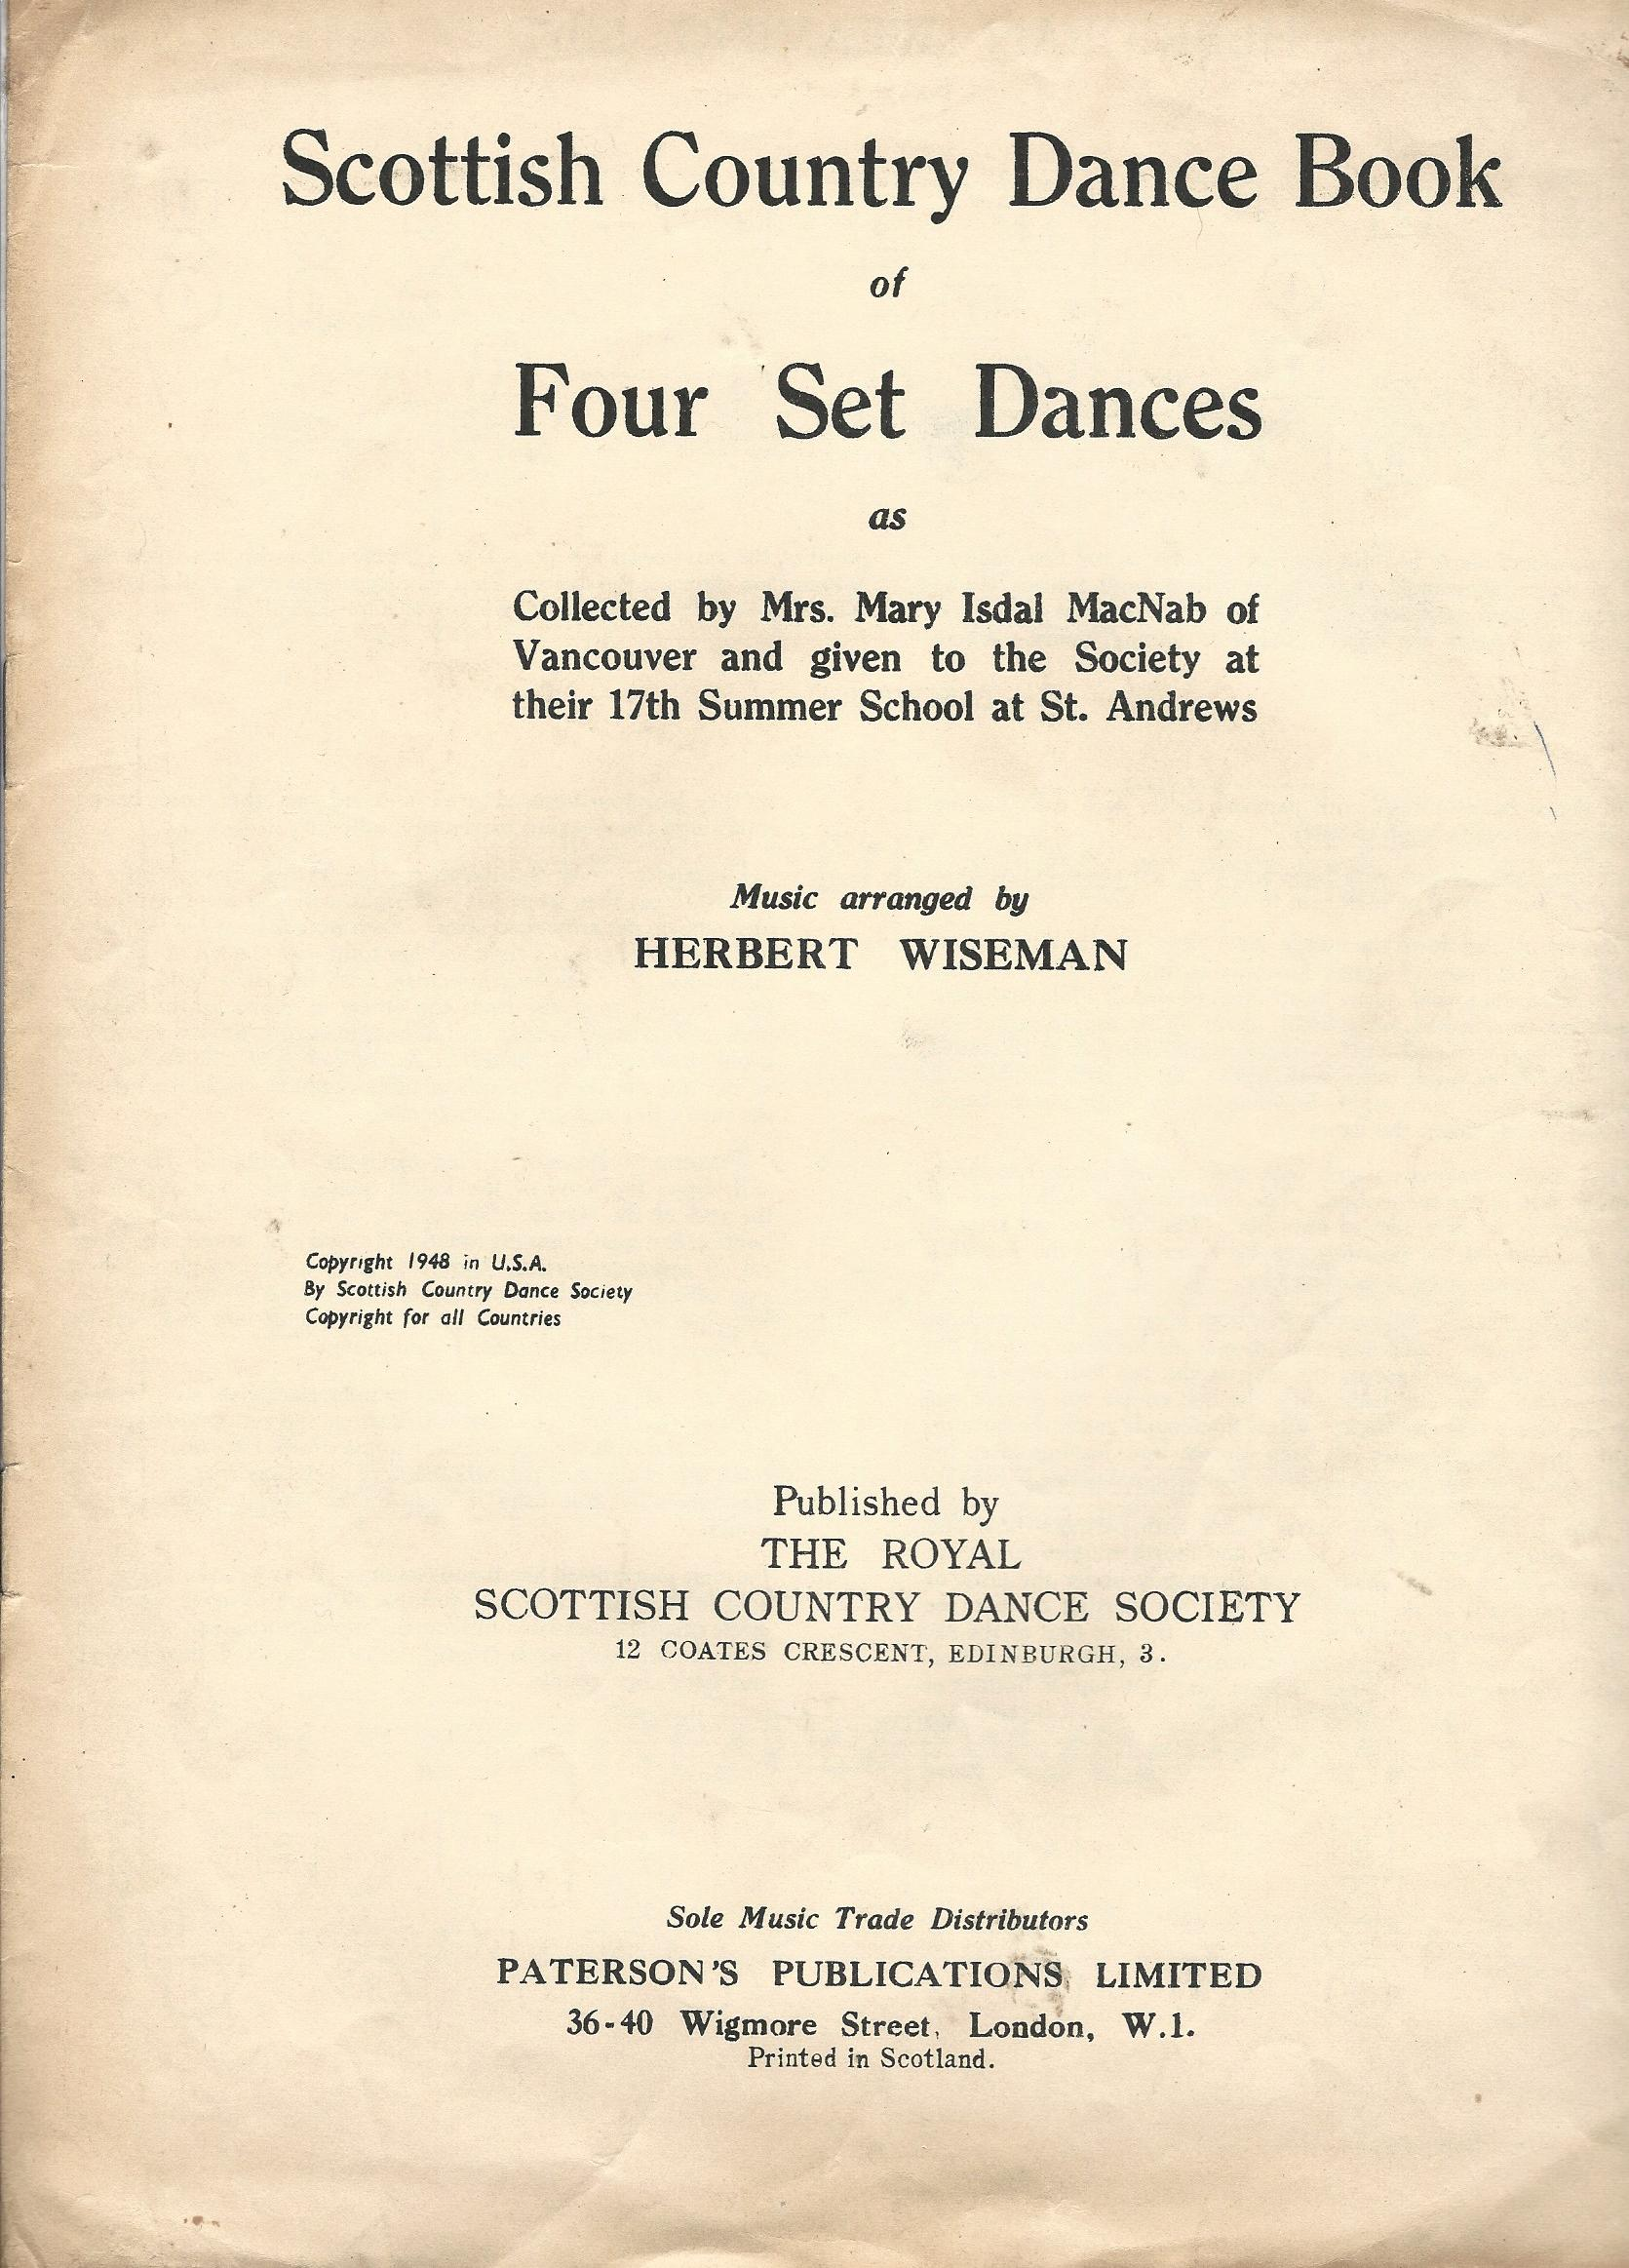 Image for Scottish Country Dance Book of Four Set Dances, as collected by Mrs Mary Isdal MacNab of Vancouver and given to the Society at their 17th Summer School at St. Andrews.